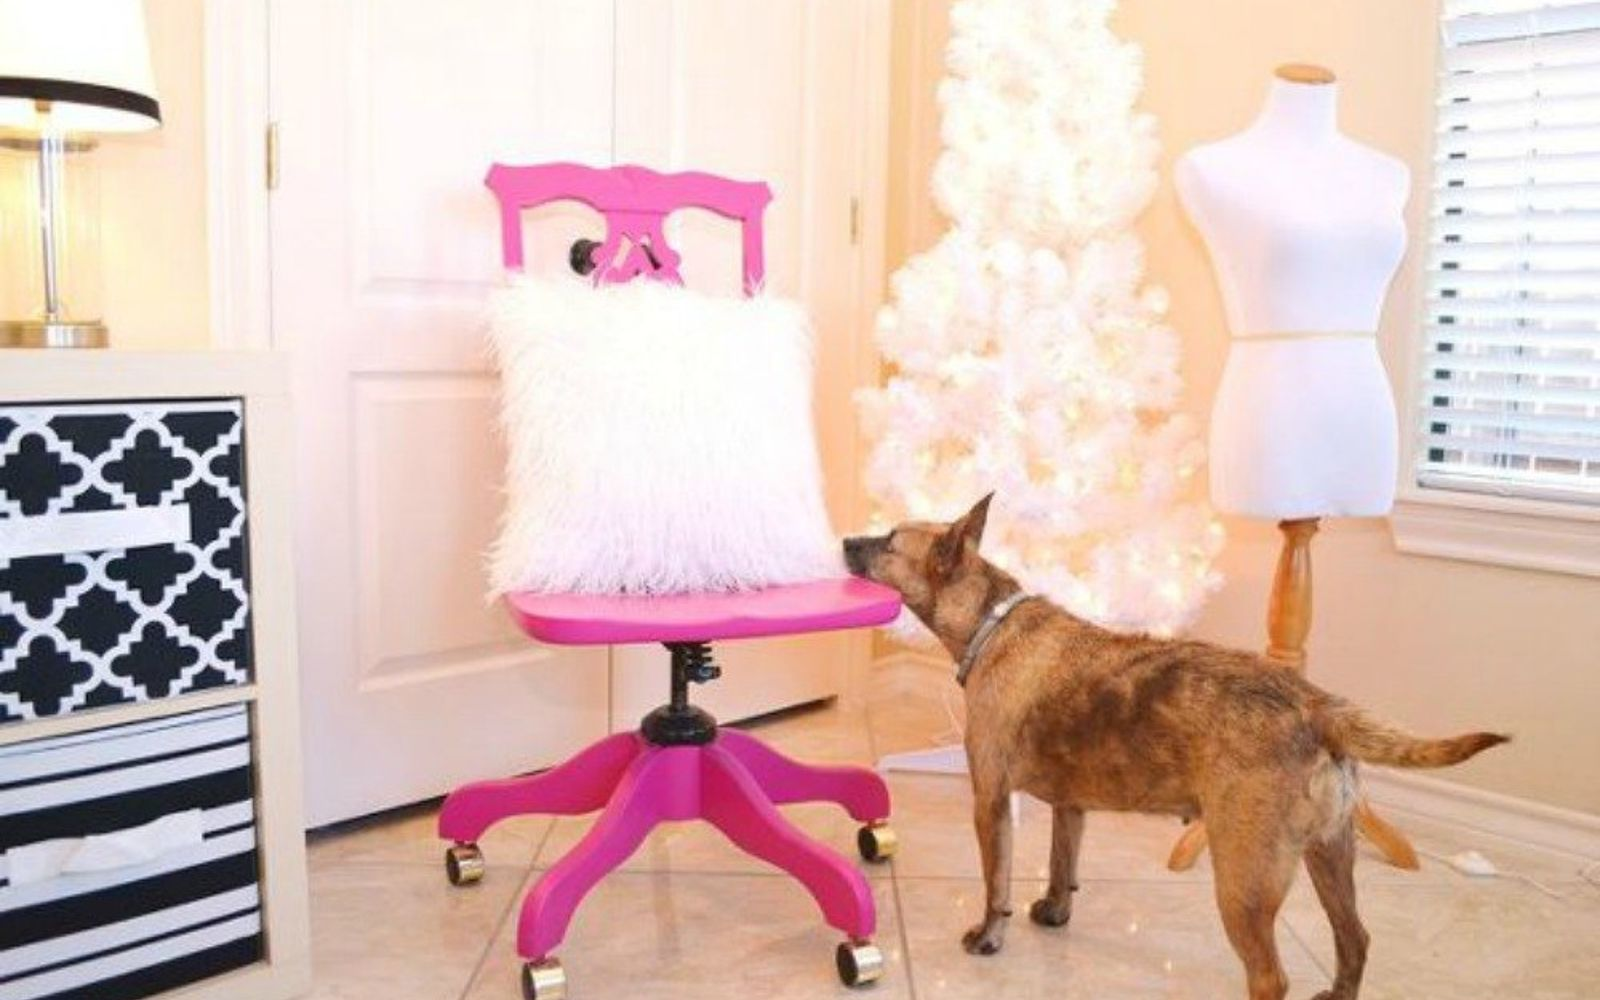 s i hate pink but these makeovers changed my mind , This sassy hot pink chair